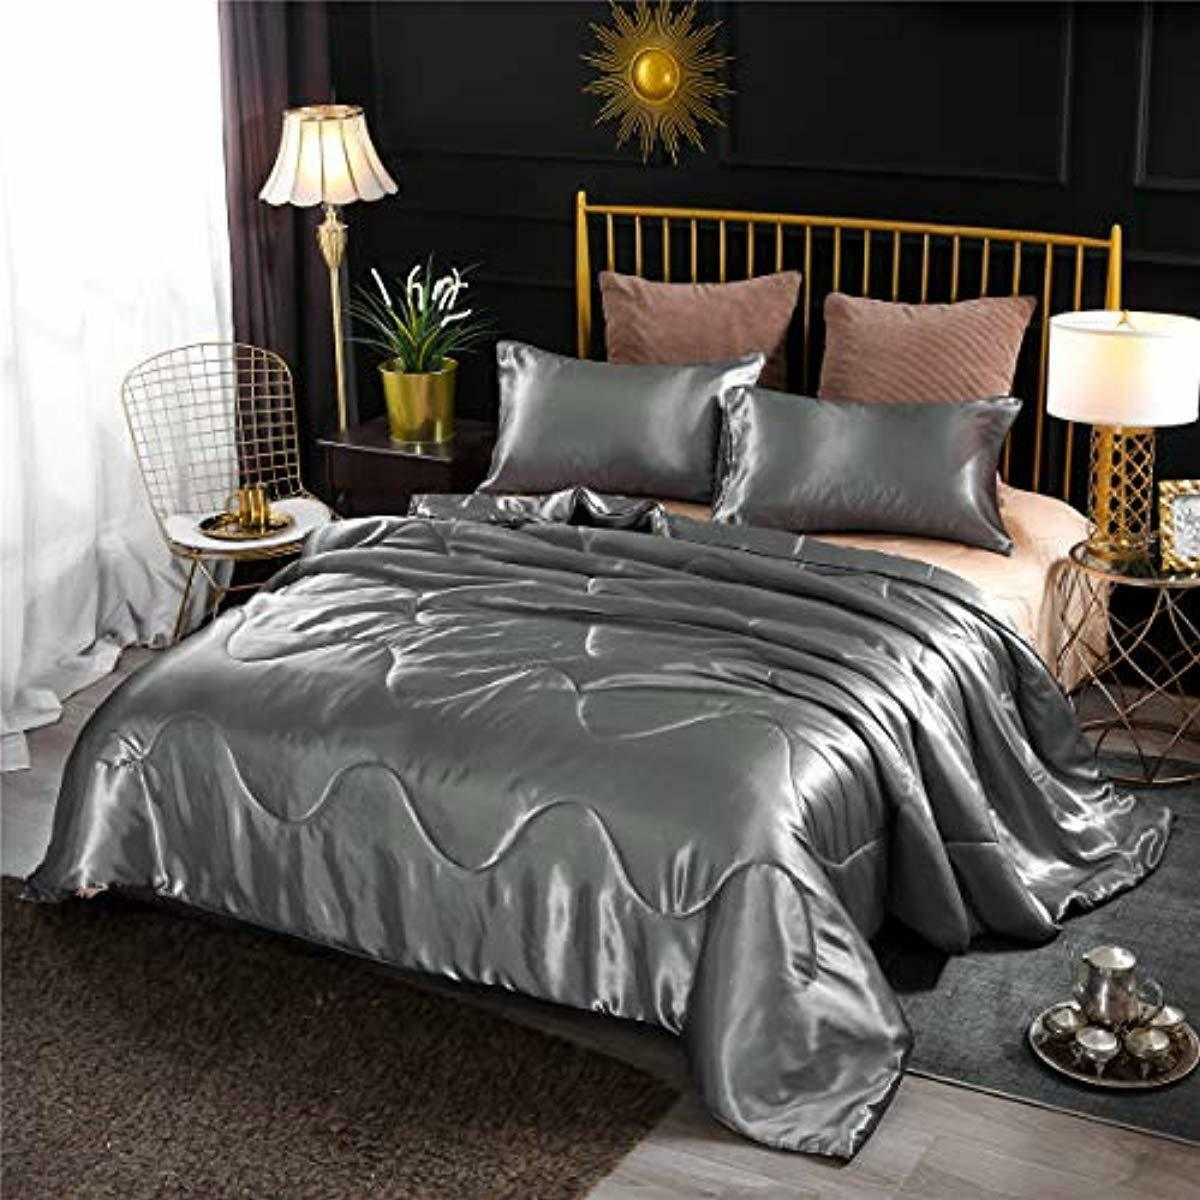 Bedding Sets Queen Clearance Best Comforter Luxury Silky Satin Quilted Gray 3 Ebay